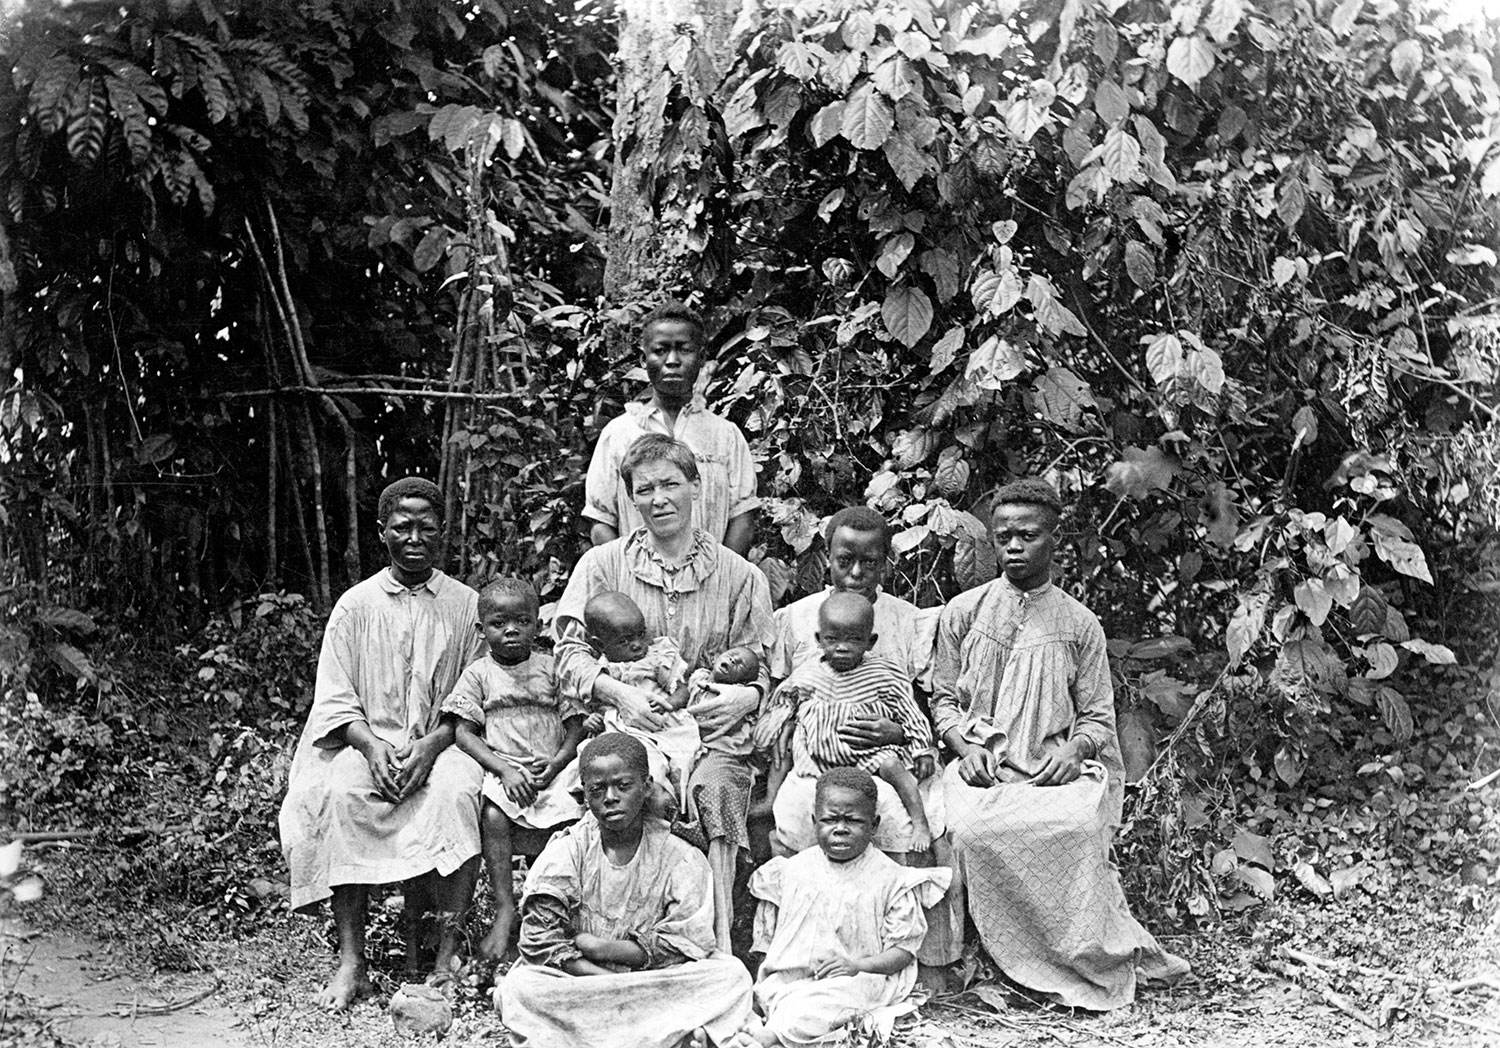 Mary Slessor and a group of local children, Okoyong, Calabar region, Nigeria, late 19th century. © Dundee City Council; Dundee's Art Galleries and Museums.